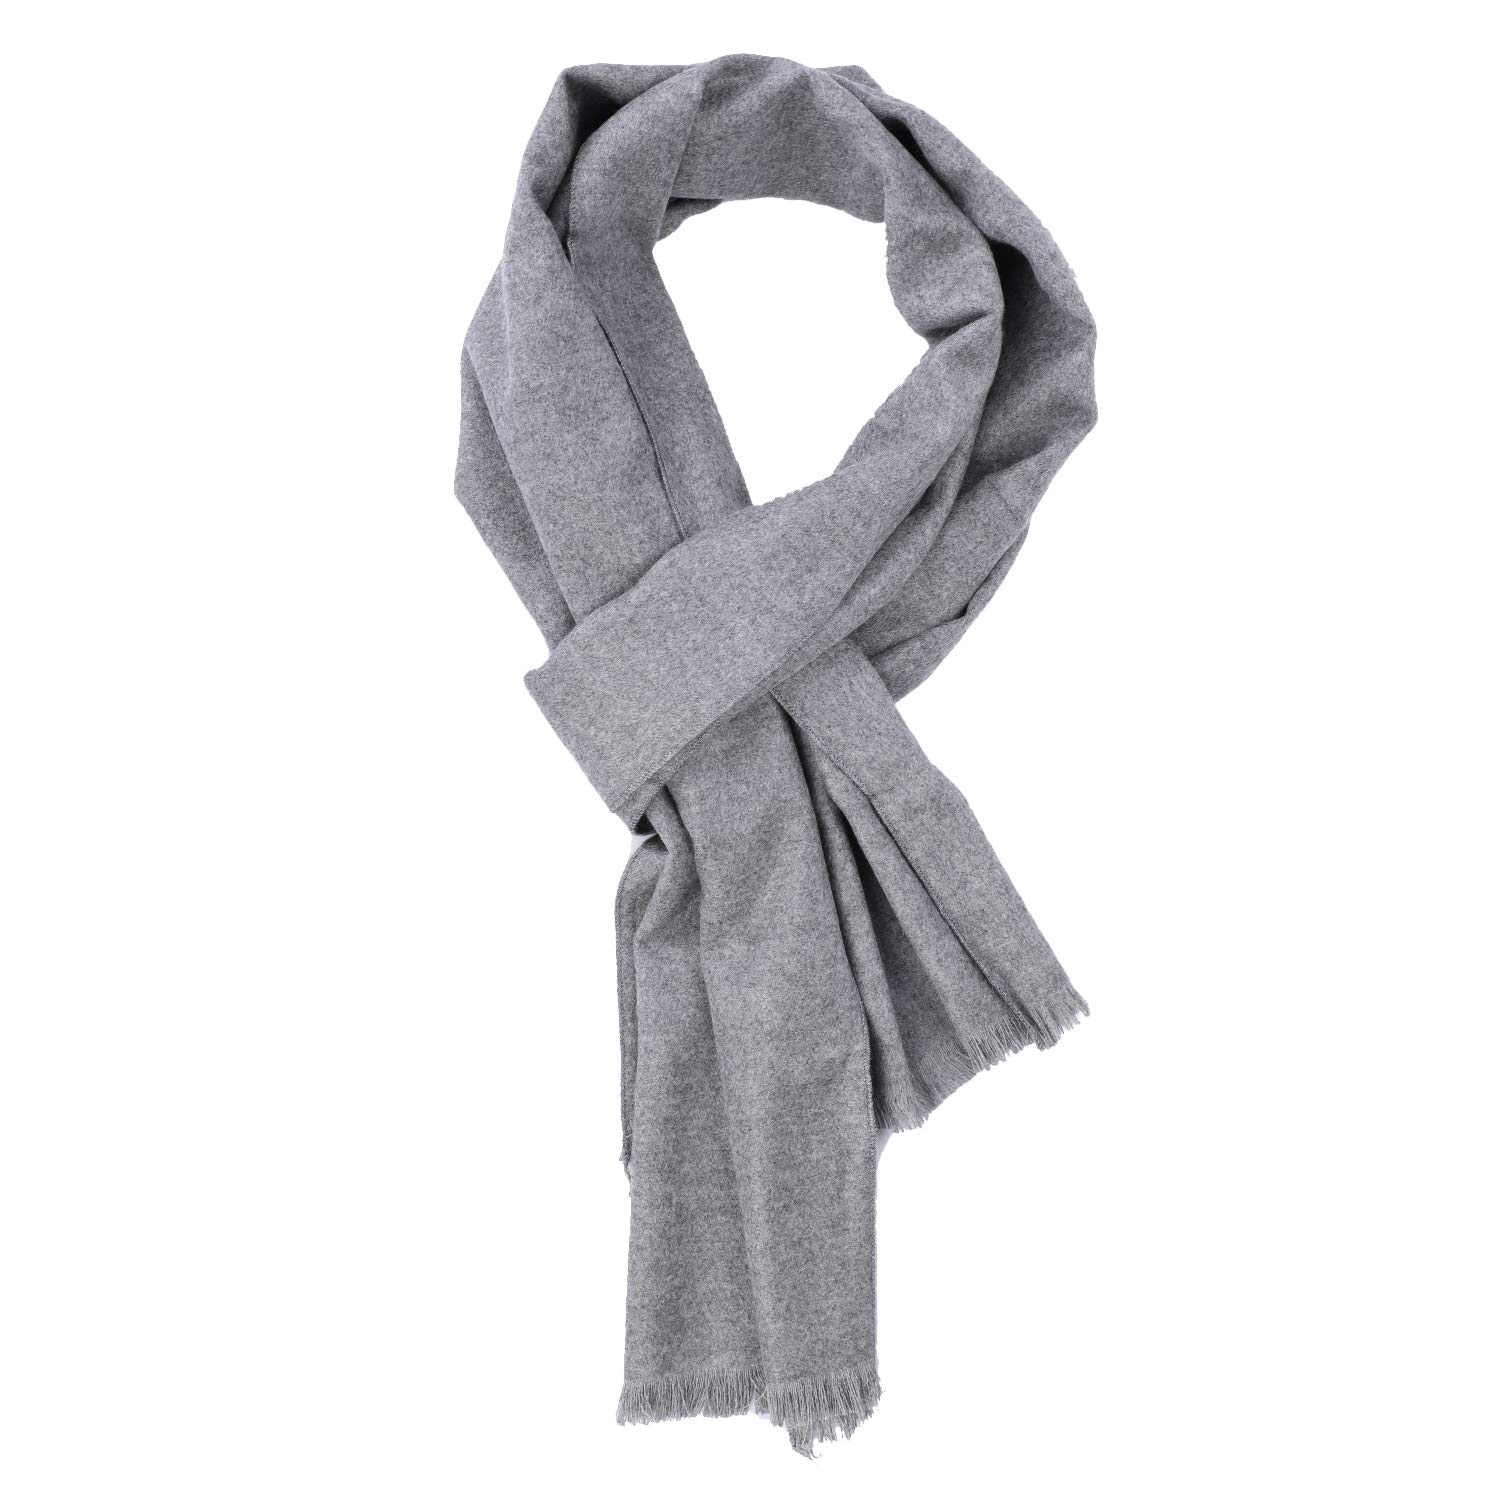 Mens Womens Cashmere Feel Winter Scarf Formal Soft Scarves Large Pashmina Wraps